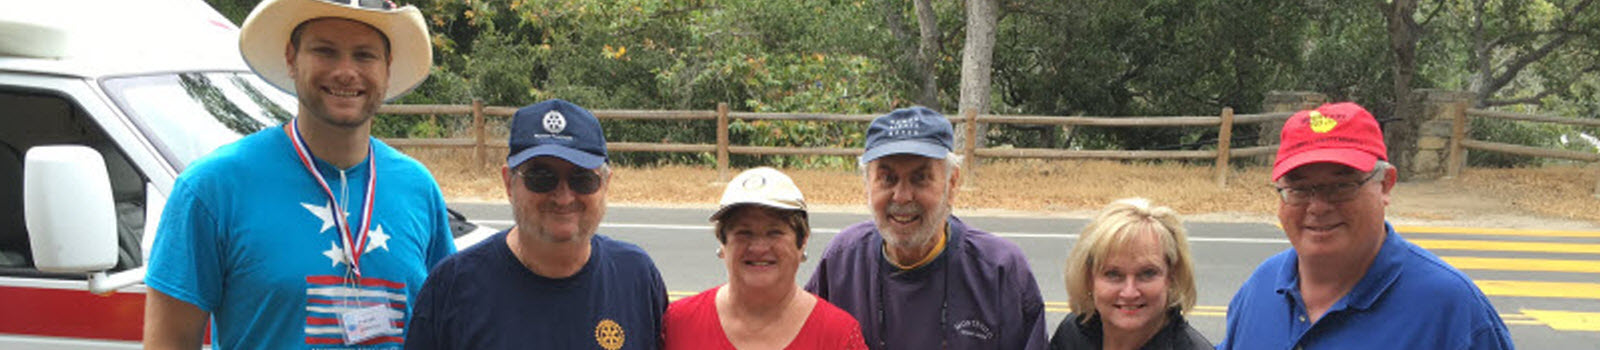 Welcome to the Rotary Club of Montecito